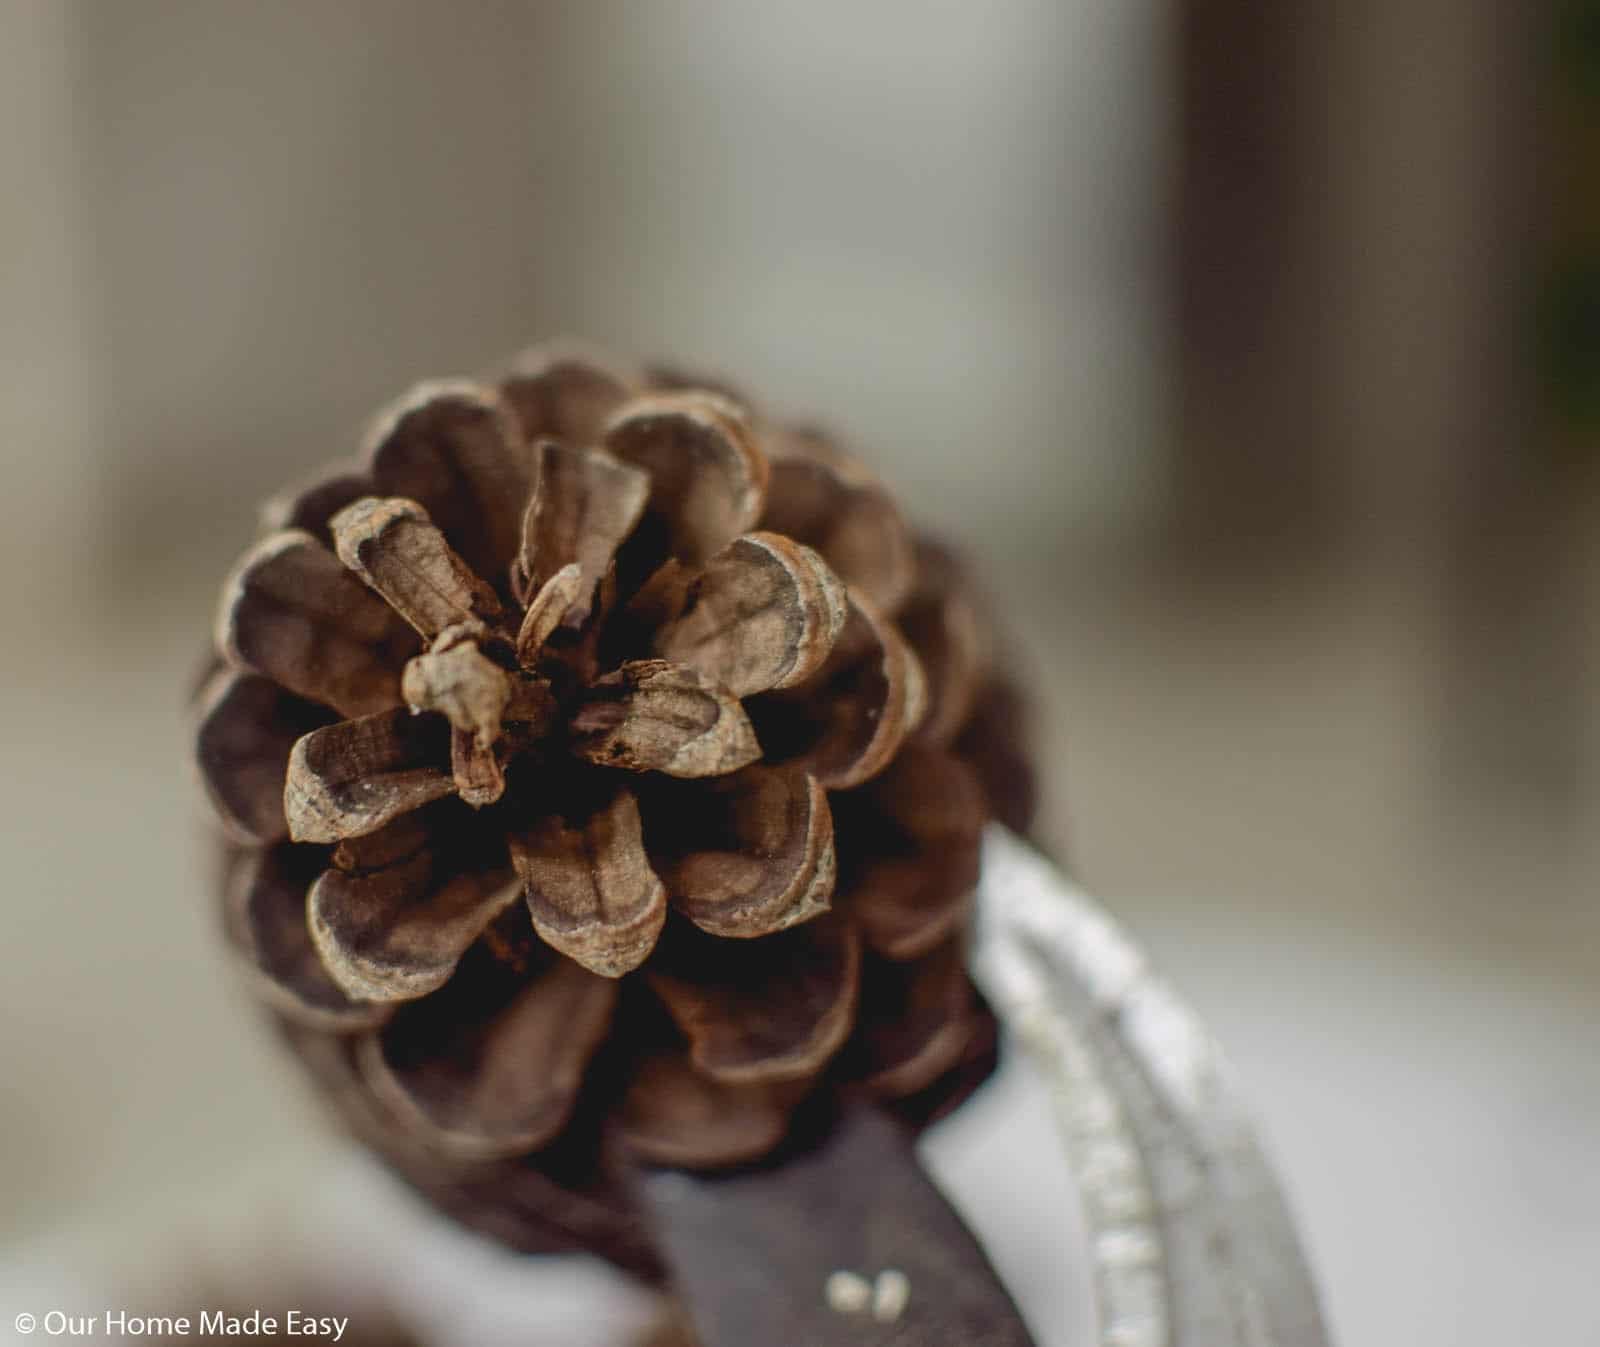 Cut the pinecone into slices based on the size you want on your wood slide ornament